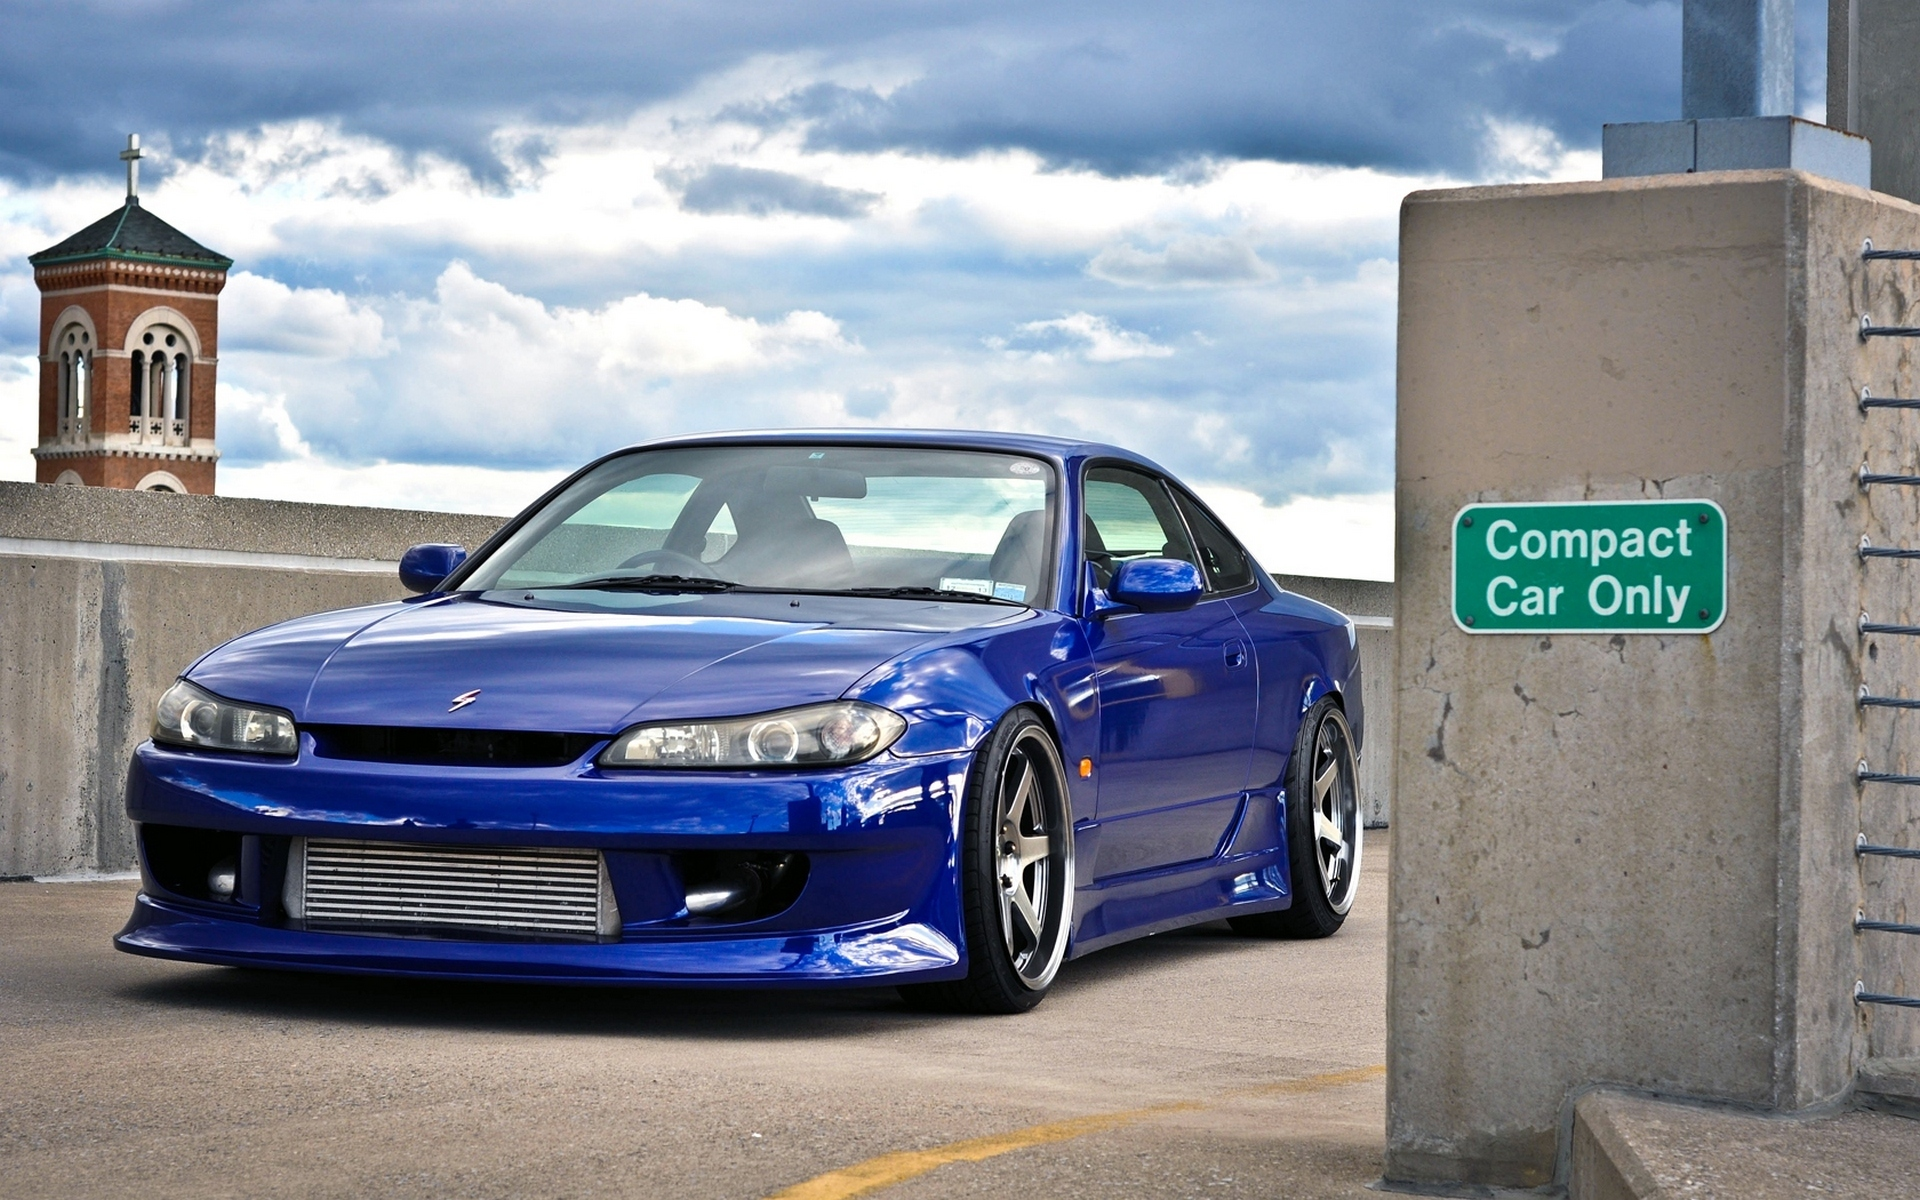 1 10 cars with Nissan Silvia S15 Jdm Tuning on Nissan Silvia S15 JDM Tuning additionally Ftwo additionally 1739 additionally BMW M Performance furthermore 10.